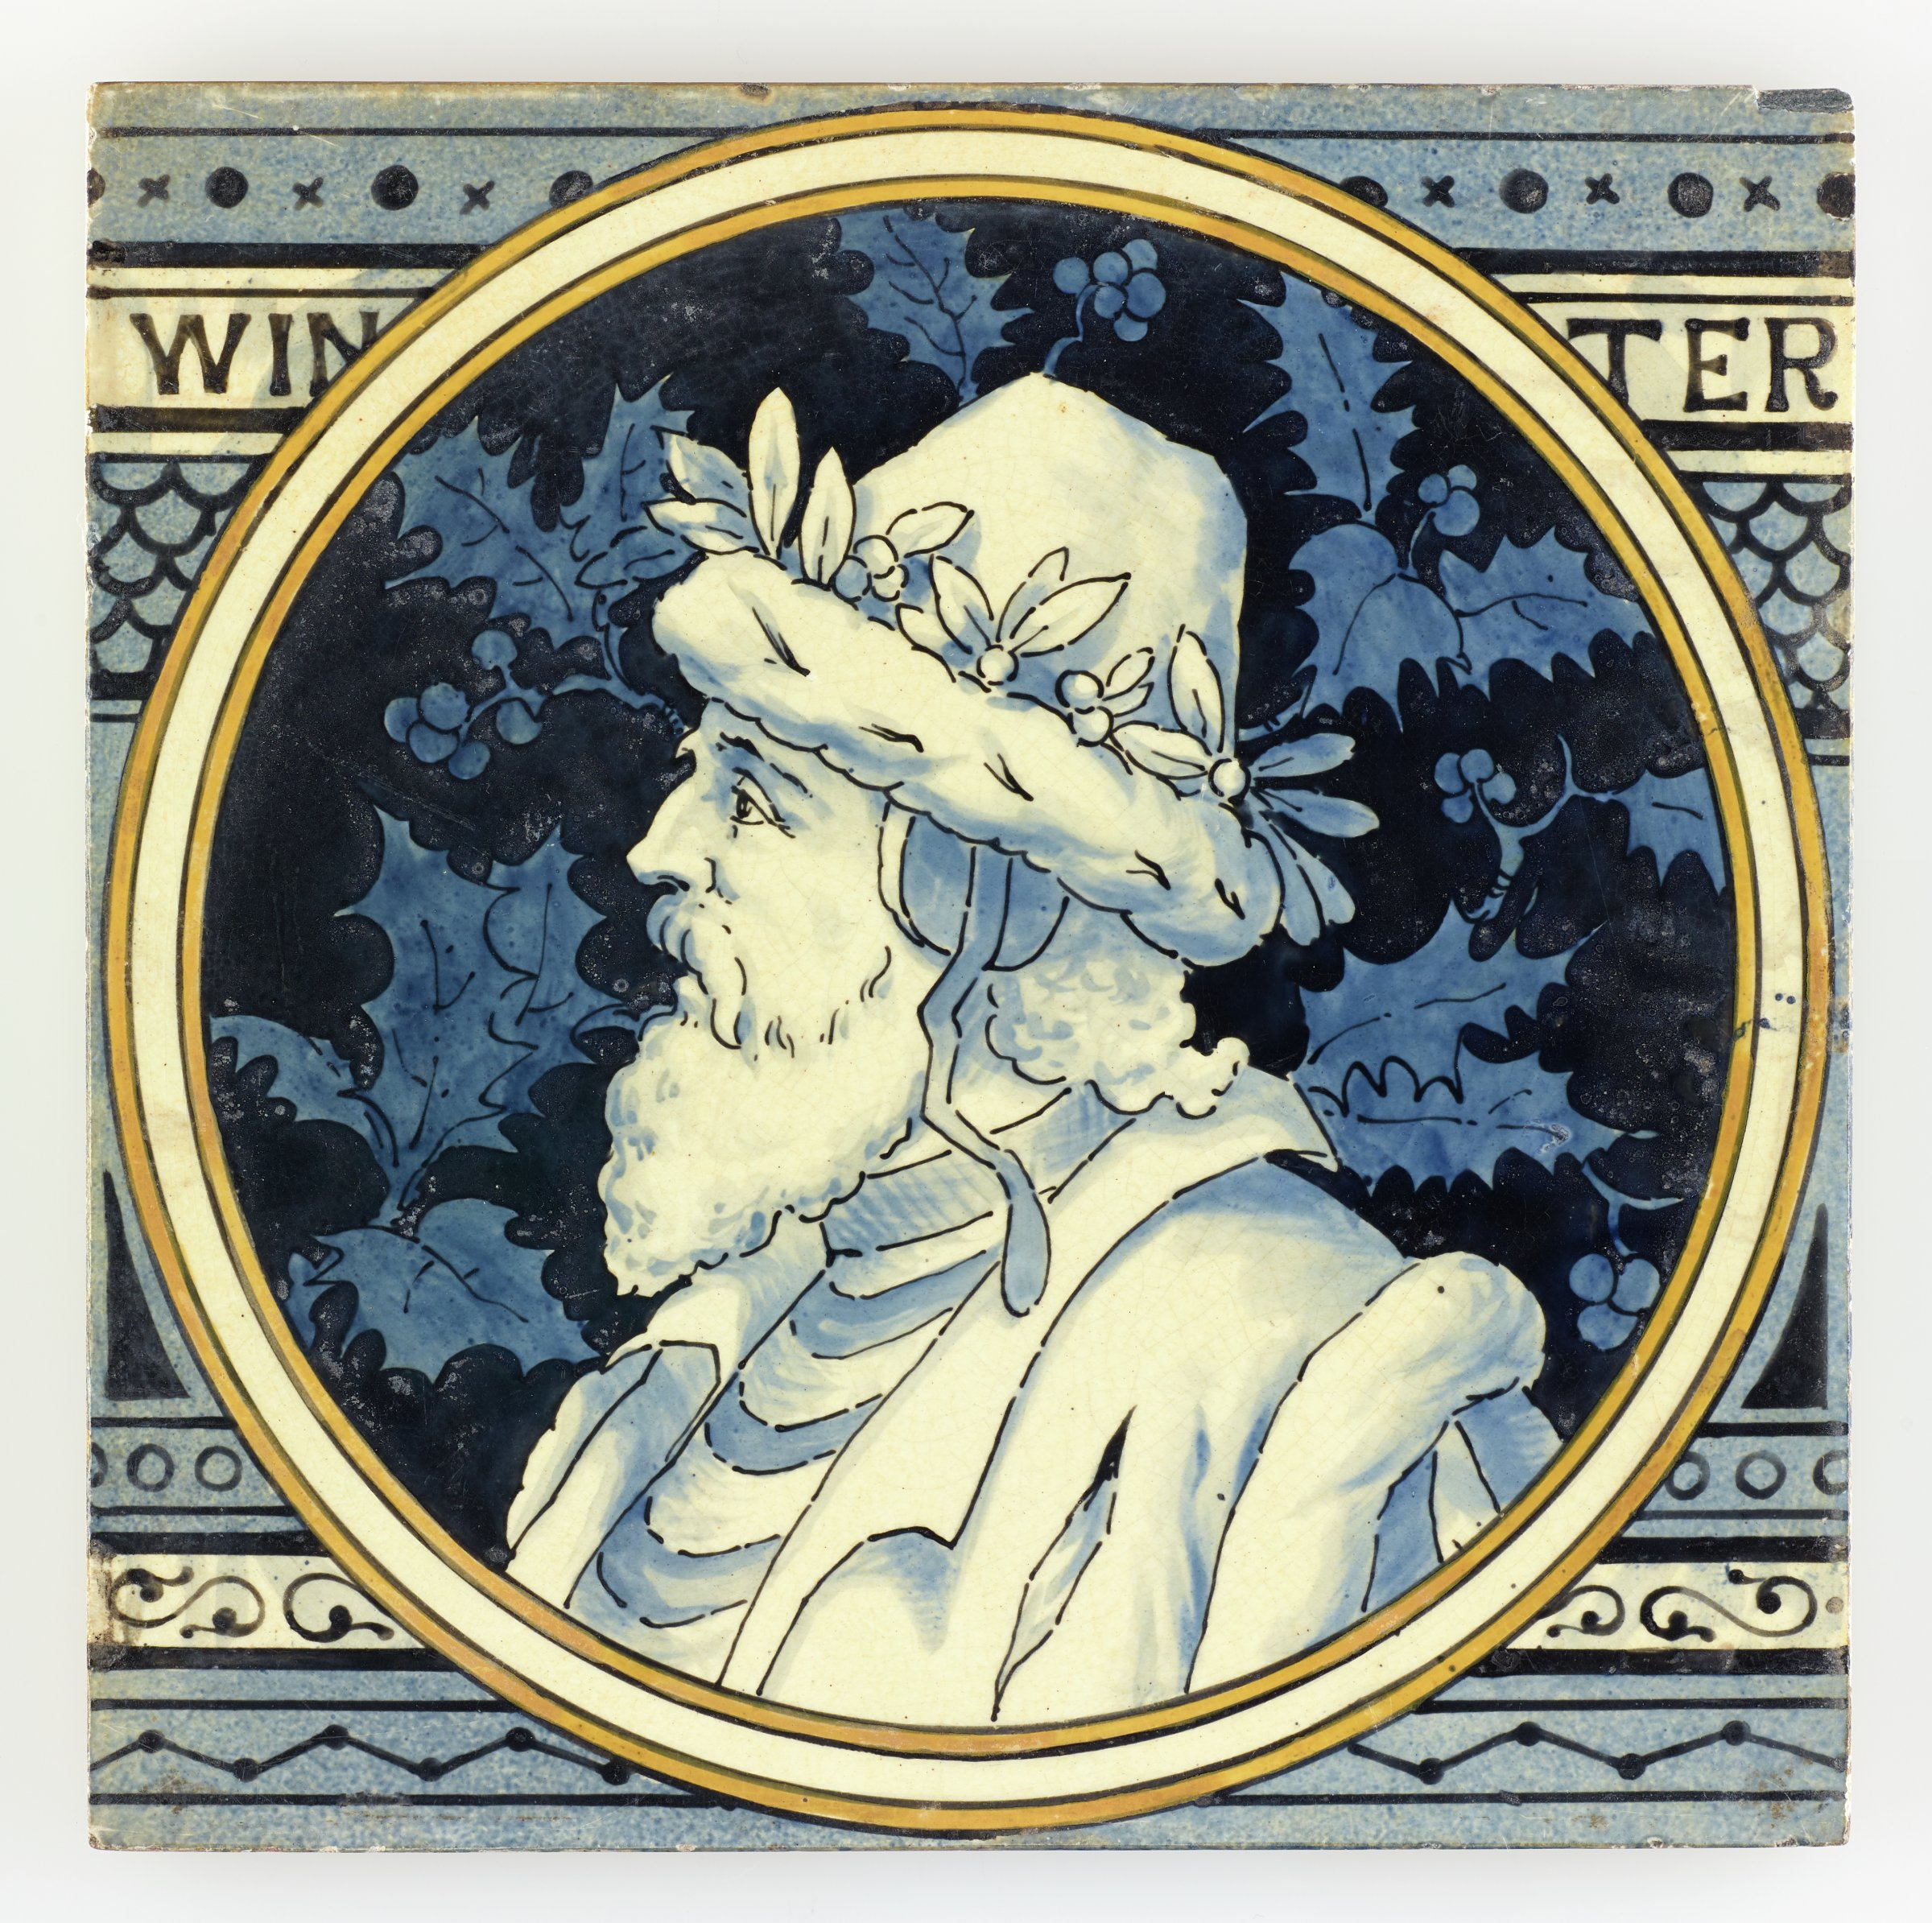 Large, square earthenware tile partially printed and hand-painted with a circular reserve outlined by a white band within two yellow bands containing in white with blue highlights the portrait of an older, bearded man to left wearing a fur coat and ermine cap with ear muffs, the cap has a band of holly, the ground with a blue on blue design of holly sprigs, the larger ground of the tile contains in various shades of blue a pattern of decorative, horizontal bands with from the top a band of small x's and solid dots; the name of the season WIN TER; a fish scale pattern; a band of open dots; a band of scrolling motifs; and a band featuring a zigzag design, the reverse with horizontal bars in relief to aid adhesion when setting the tile.